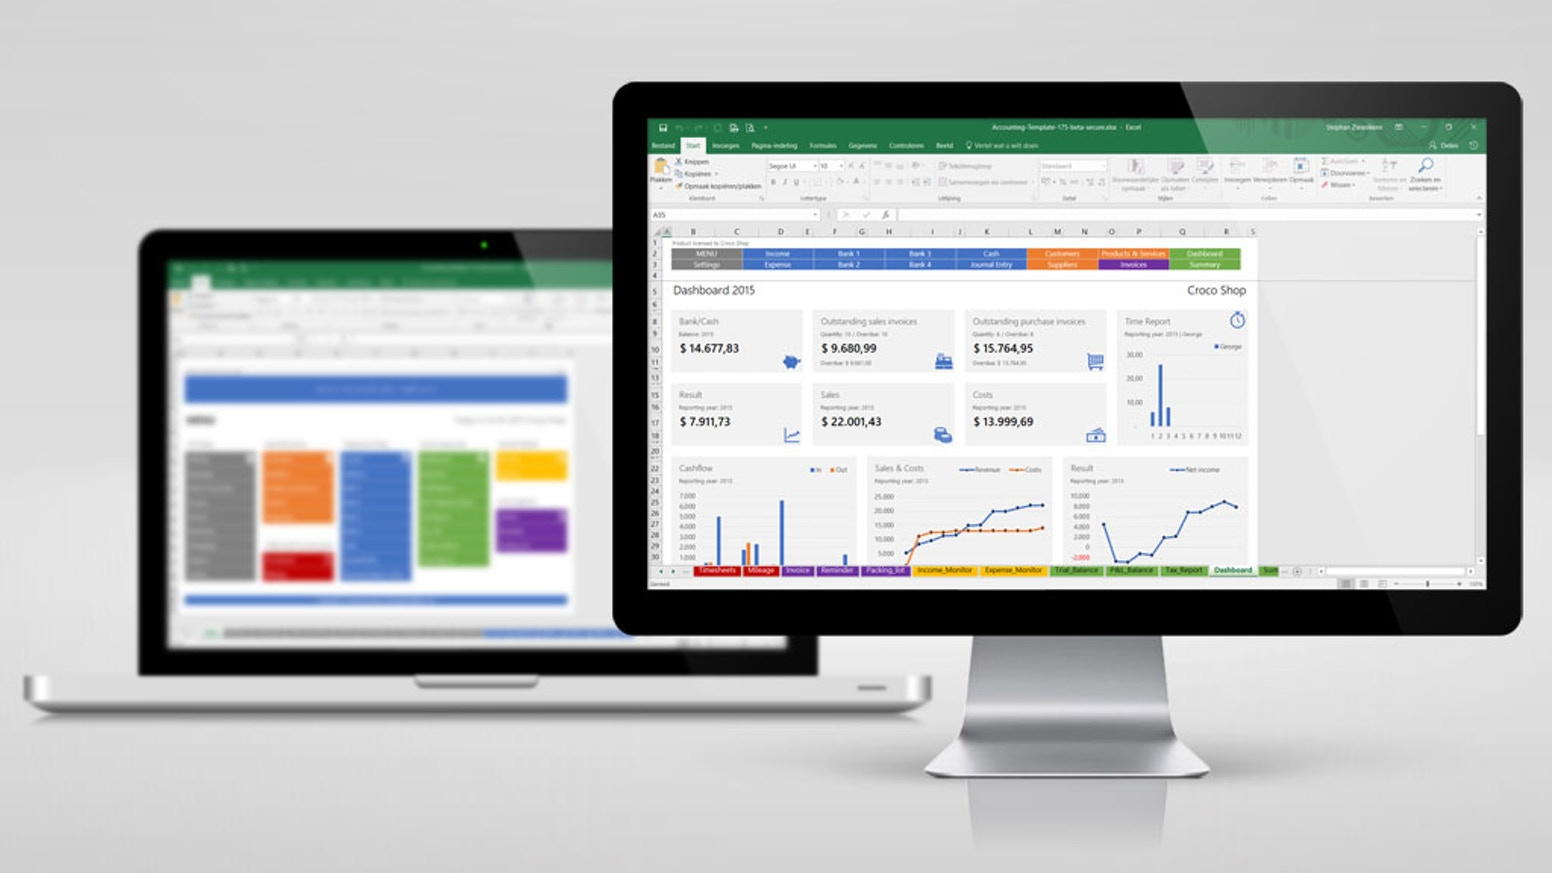 Excel accounting template by stephan zwanikken kickstarter the all in one accounting solution in excel for small business owners friedricerecipe